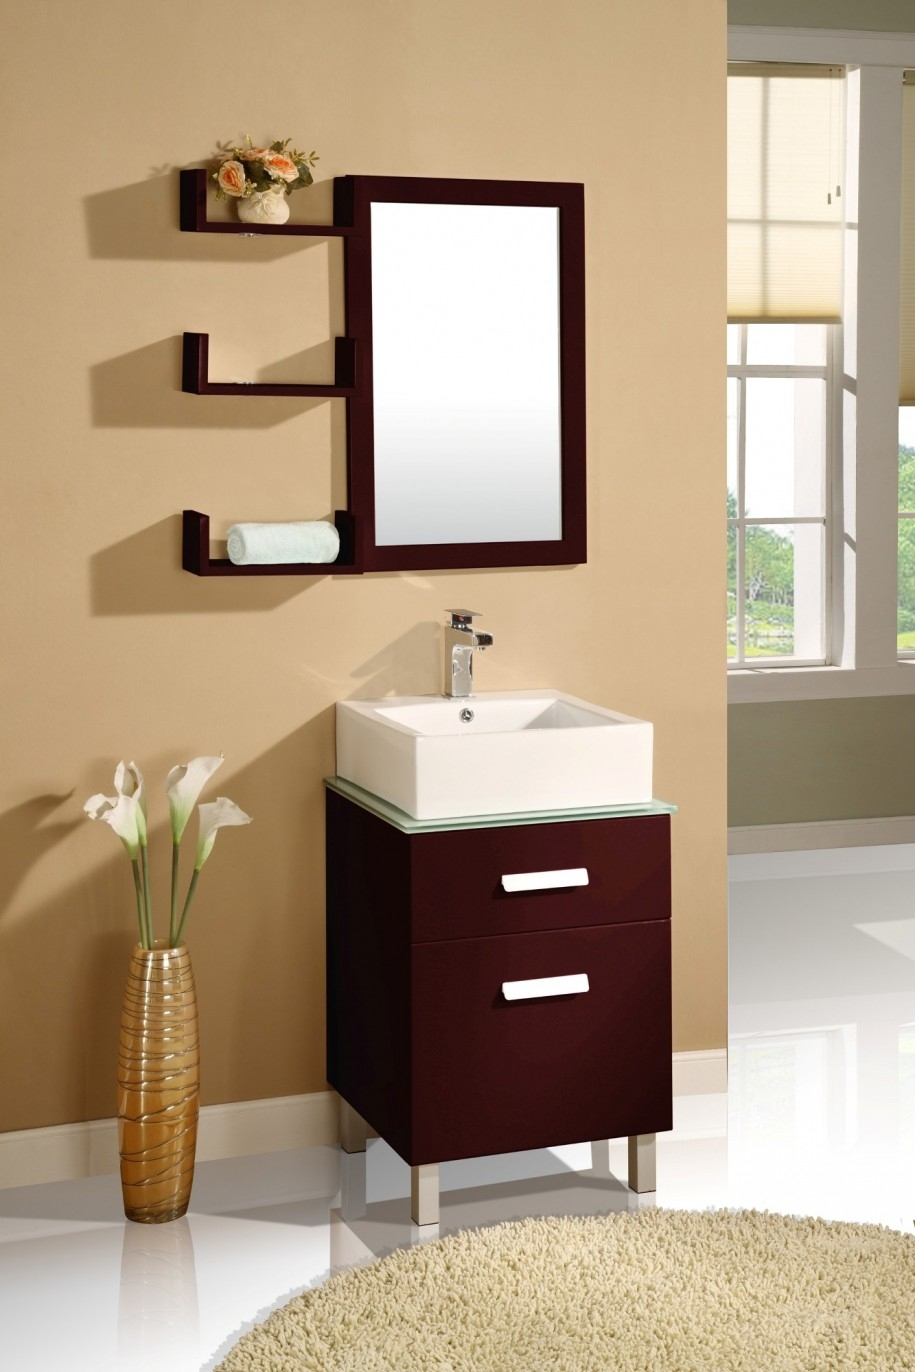 Permalink to White Wood Bathroom Mirror With Shelf